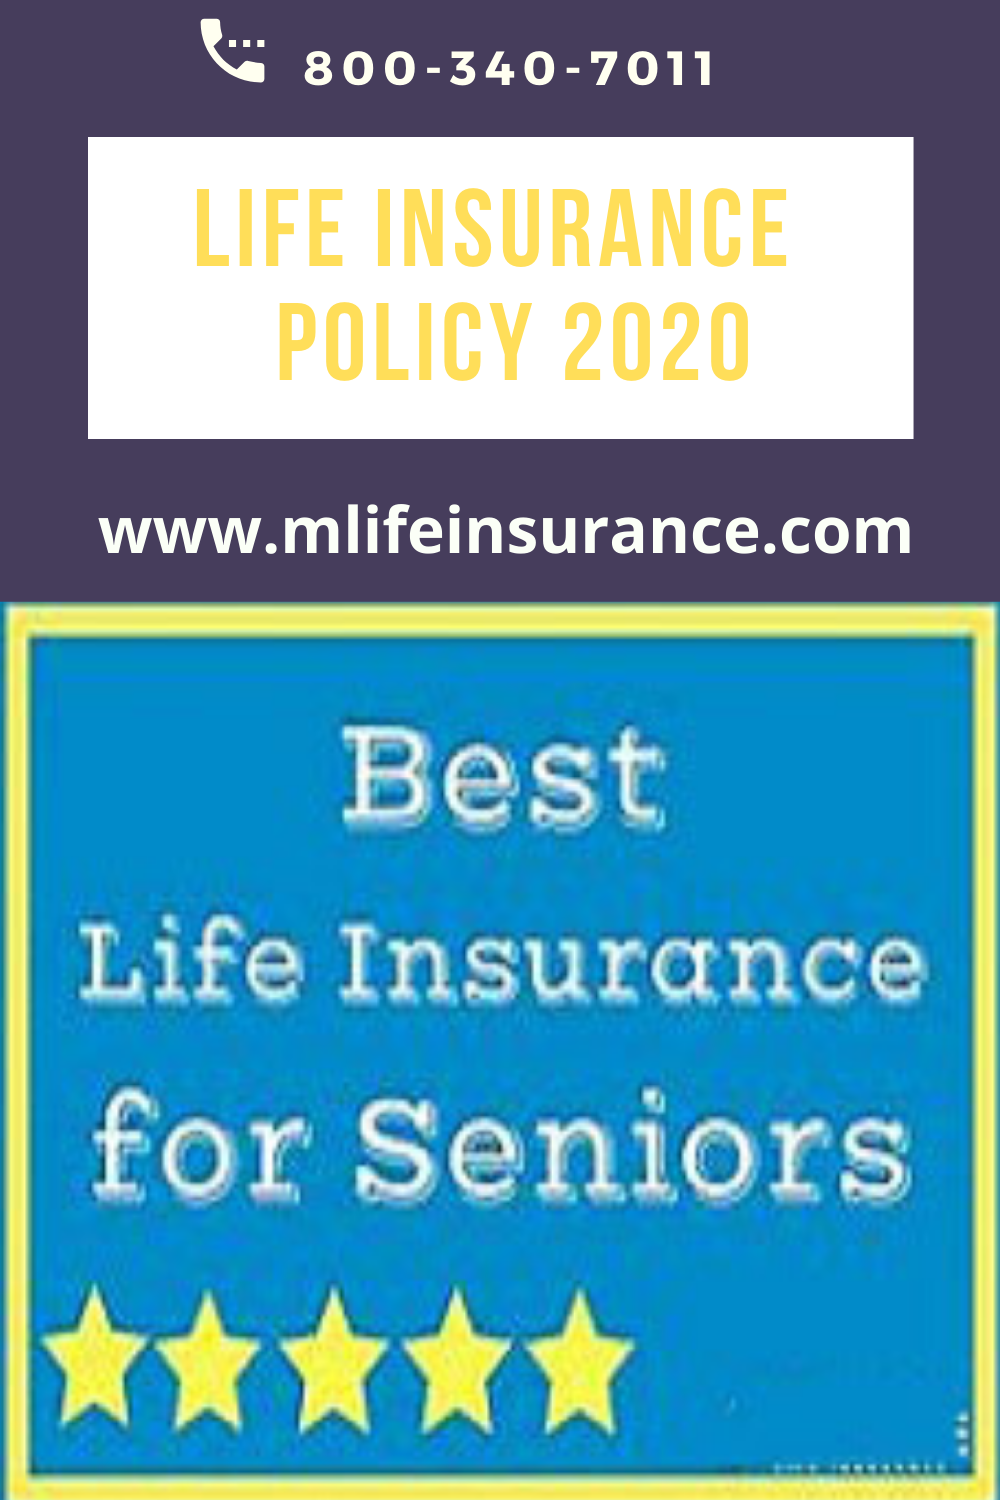 Cheap Life Insurance For Seniors 2020 In 2020 Life Insurance